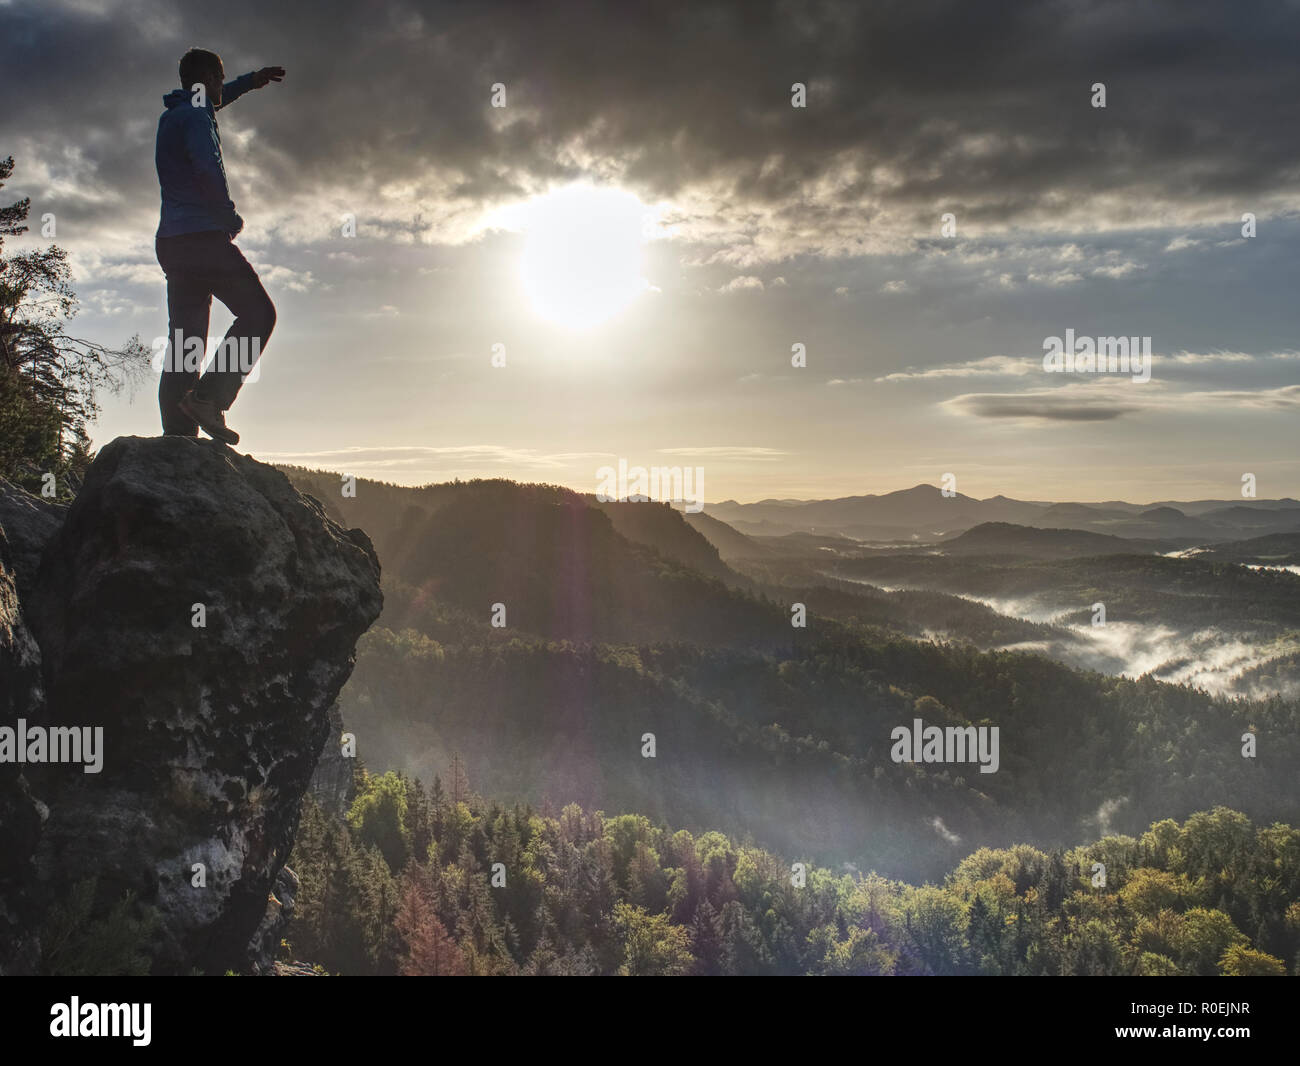 Man in rocks. Climbing hiking silhouette in fall mountains.  The climber in inspirational sunrise landscape on mountain peak. - Stock Image